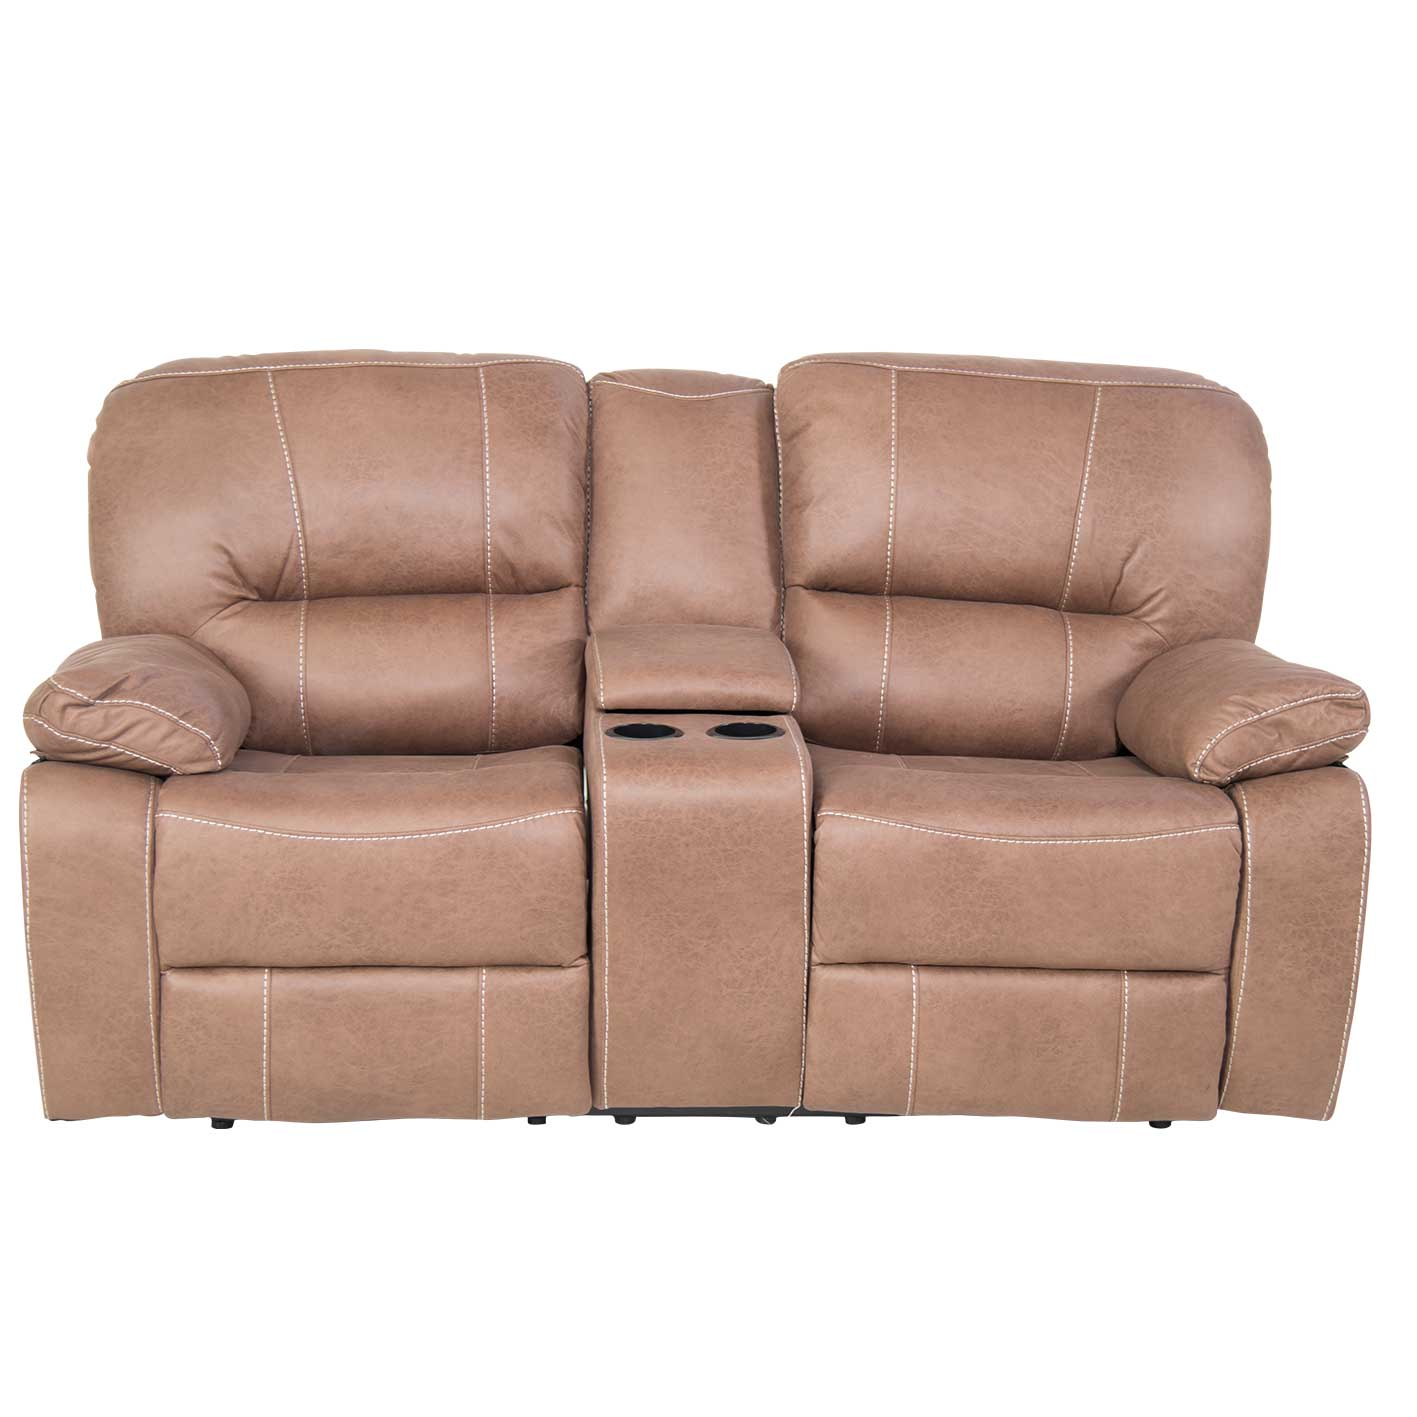 Recliner Lounge Lea007 Recliner Lounge Suite Furniture Liquidation Warehouse